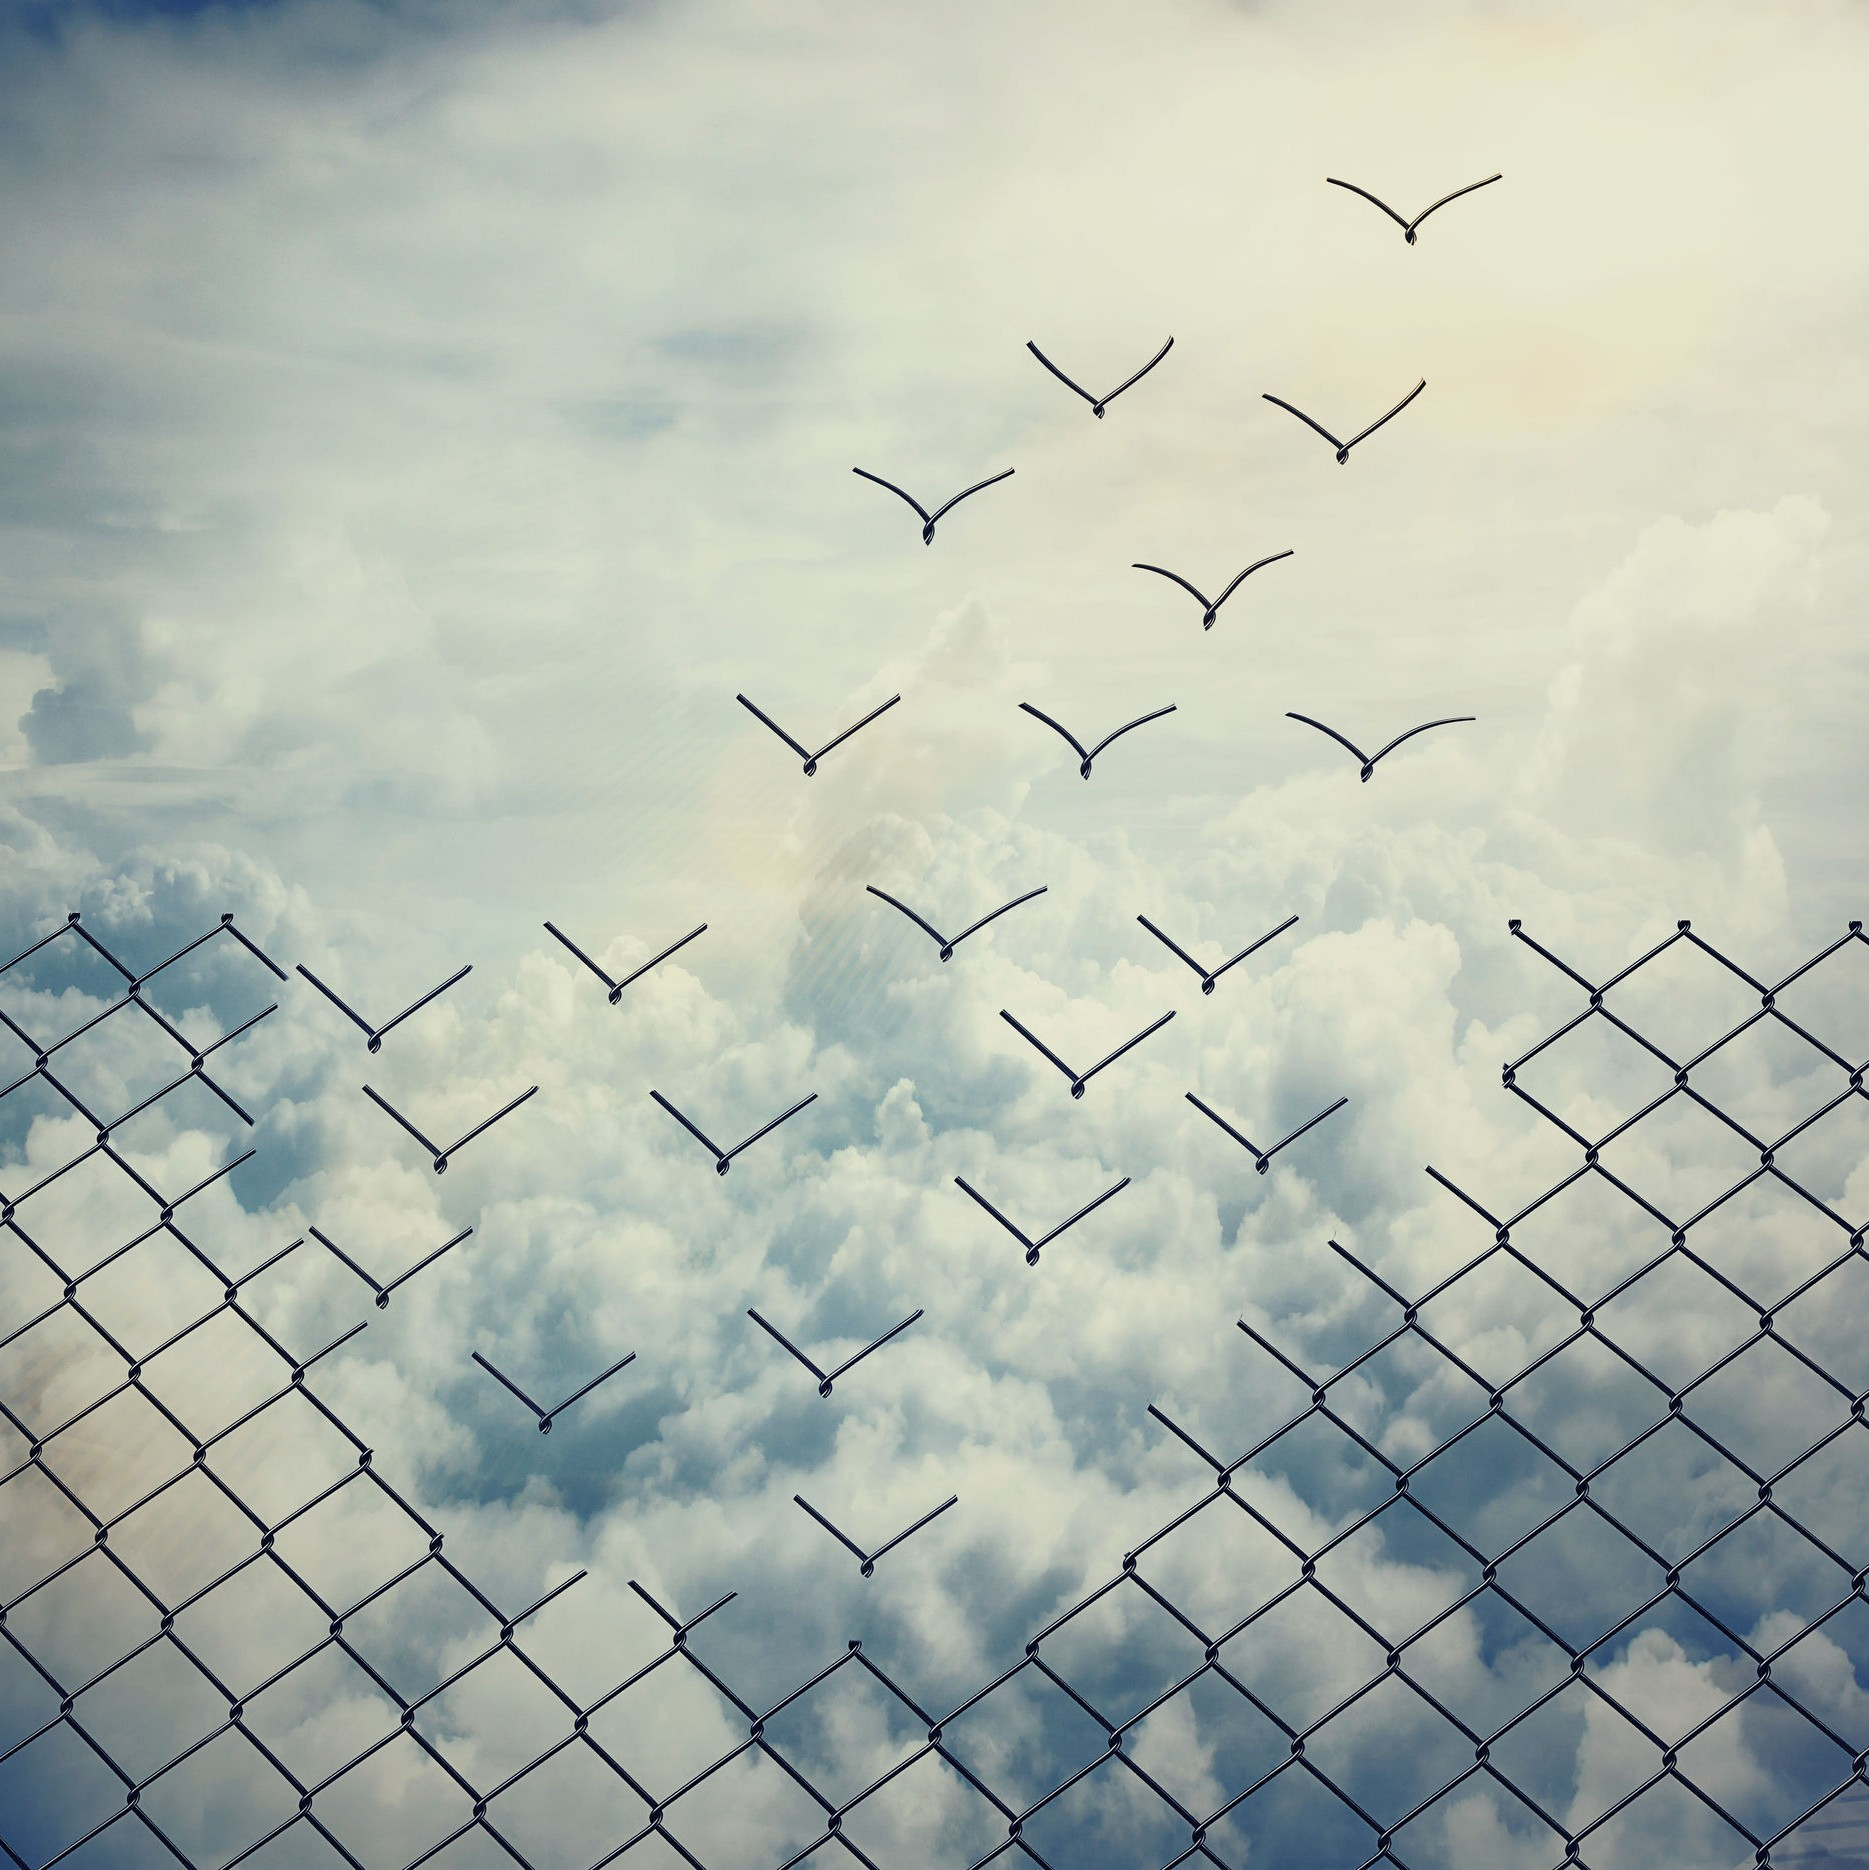 a chain link fence is set against the sky, the top links dislodging to form birds